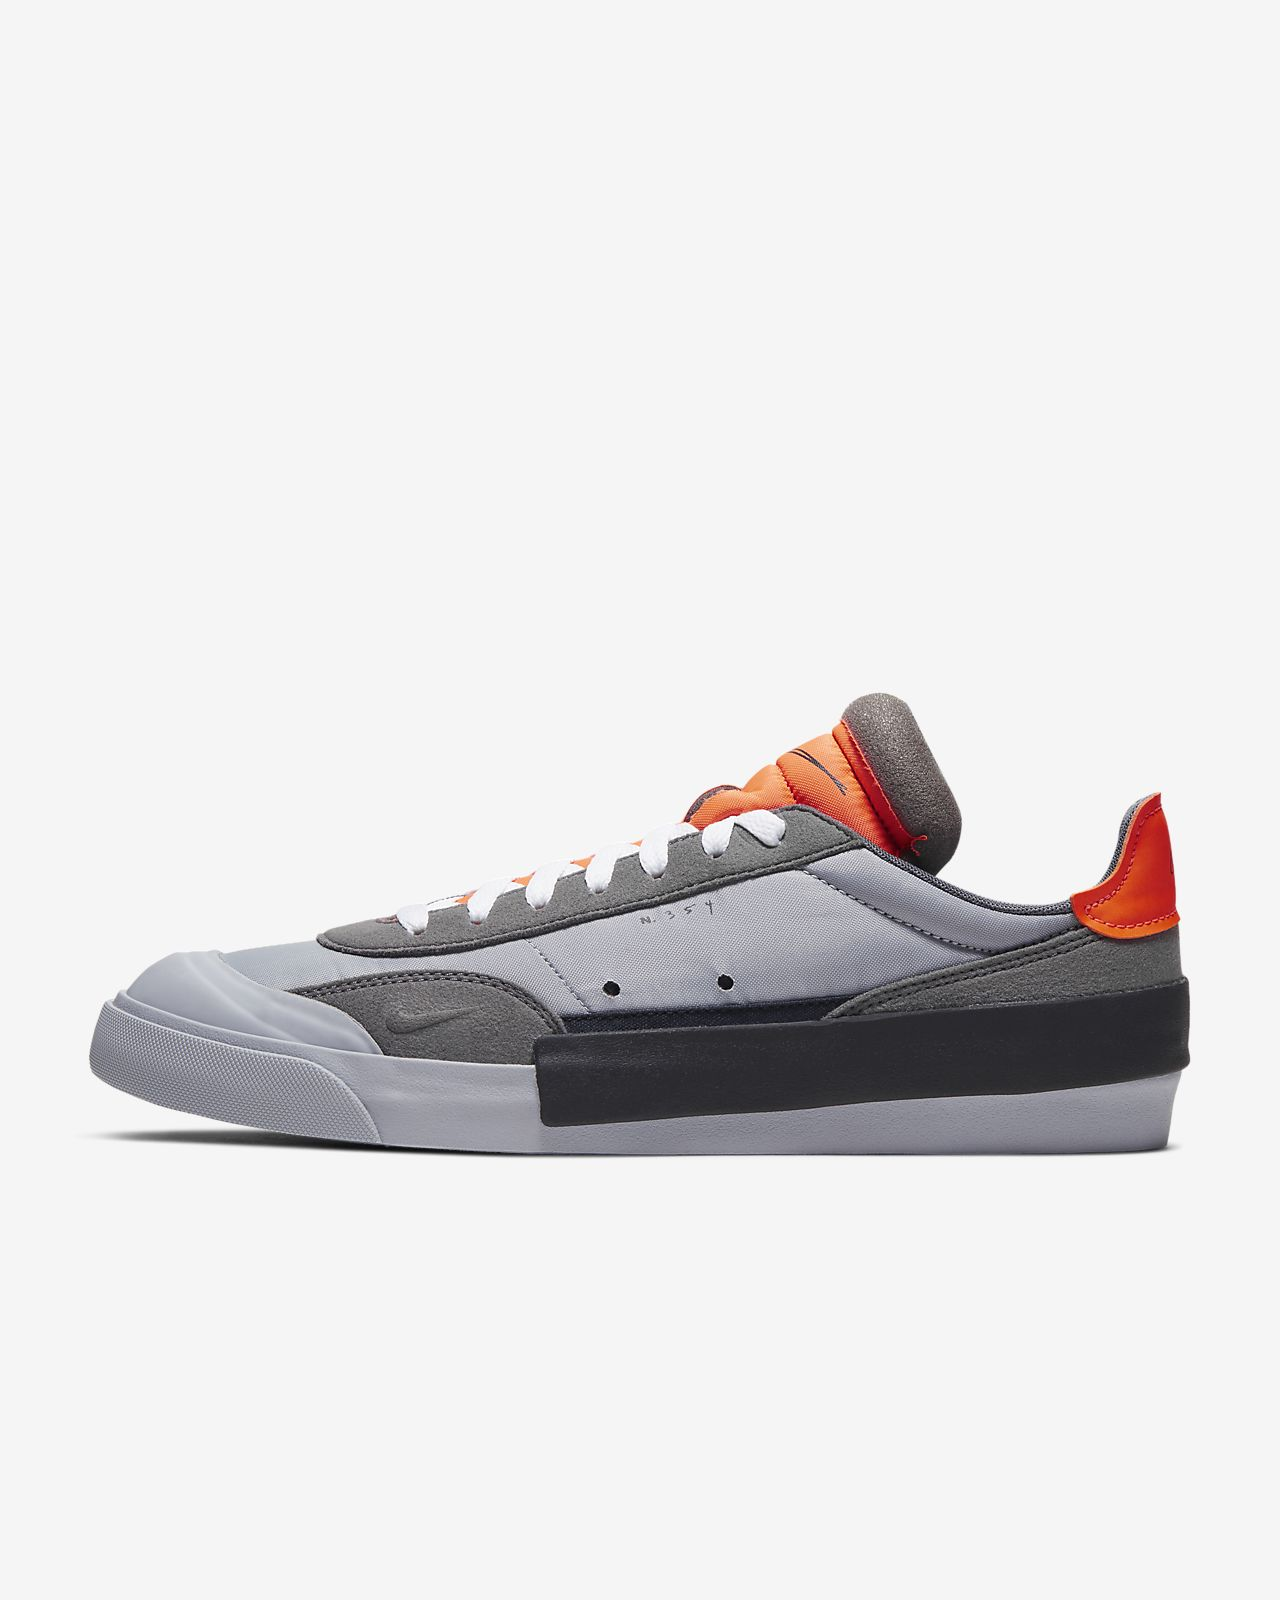 Nike Drop Type LX Men's Shoe